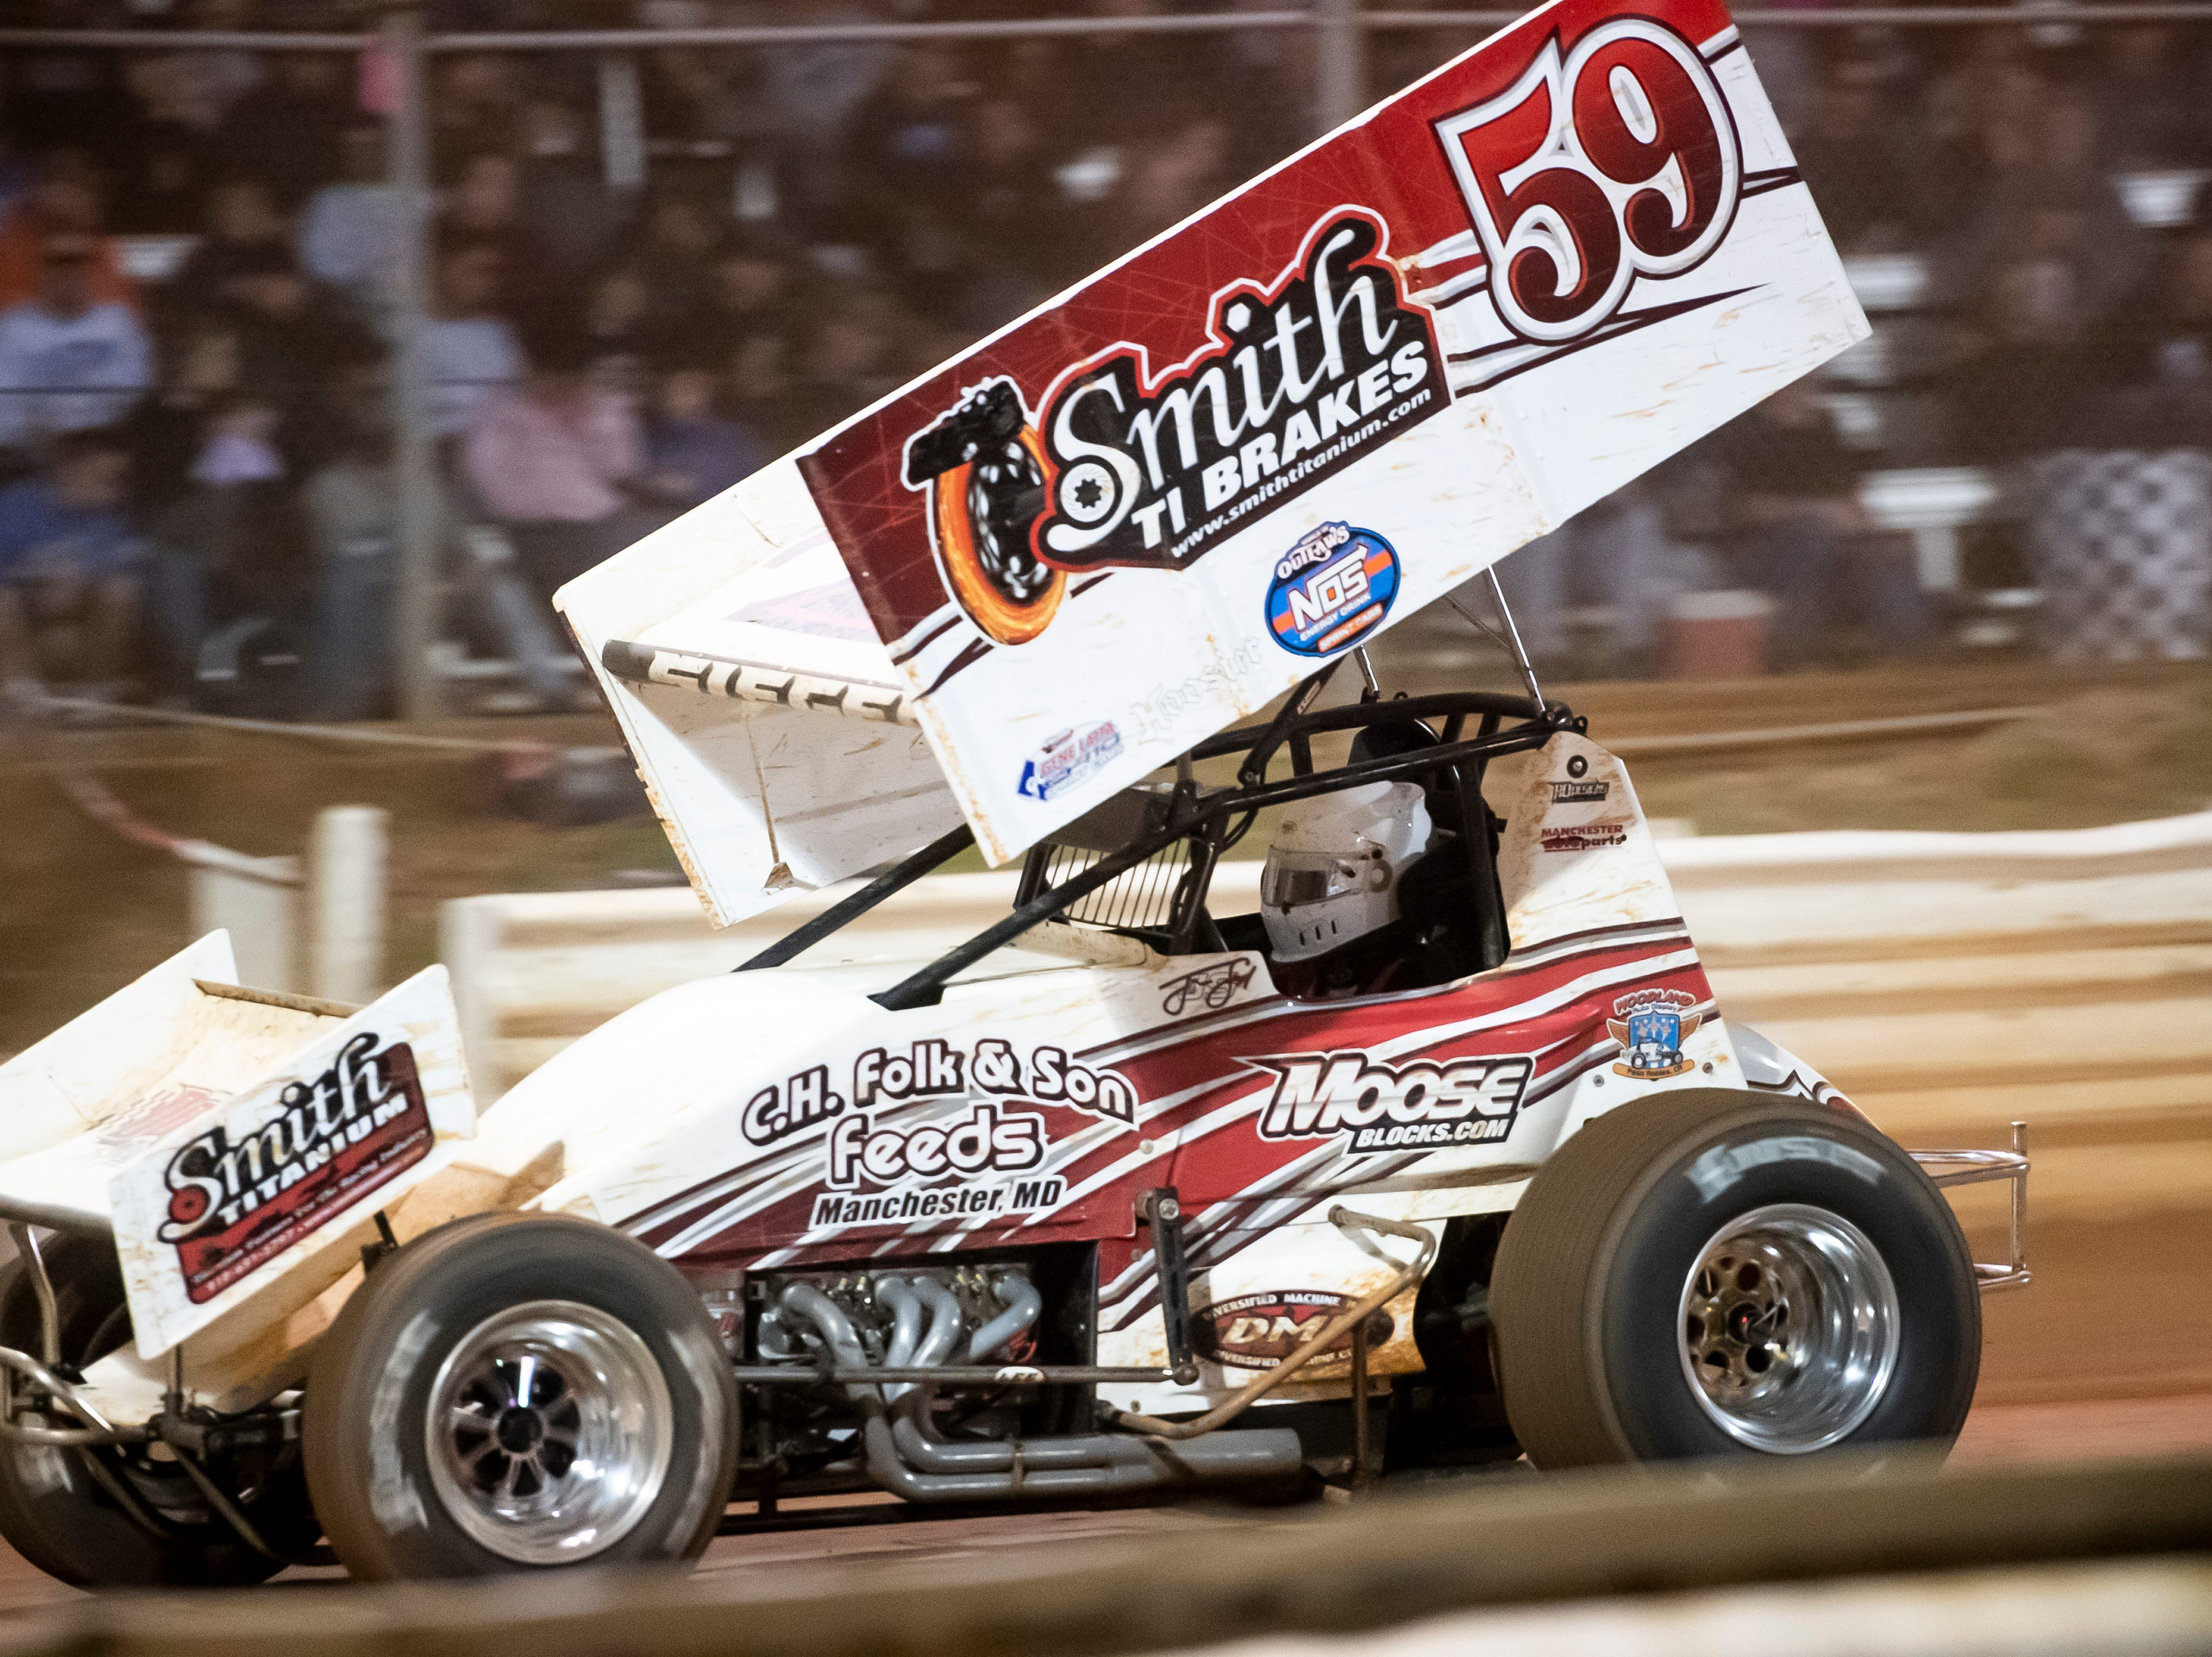 Jim Siegel races in the number 59 car during the World of Outlaws Gettysburg Clash at Lincoln Speedway in Abbottstown on Wednesday, May 15, 2019.